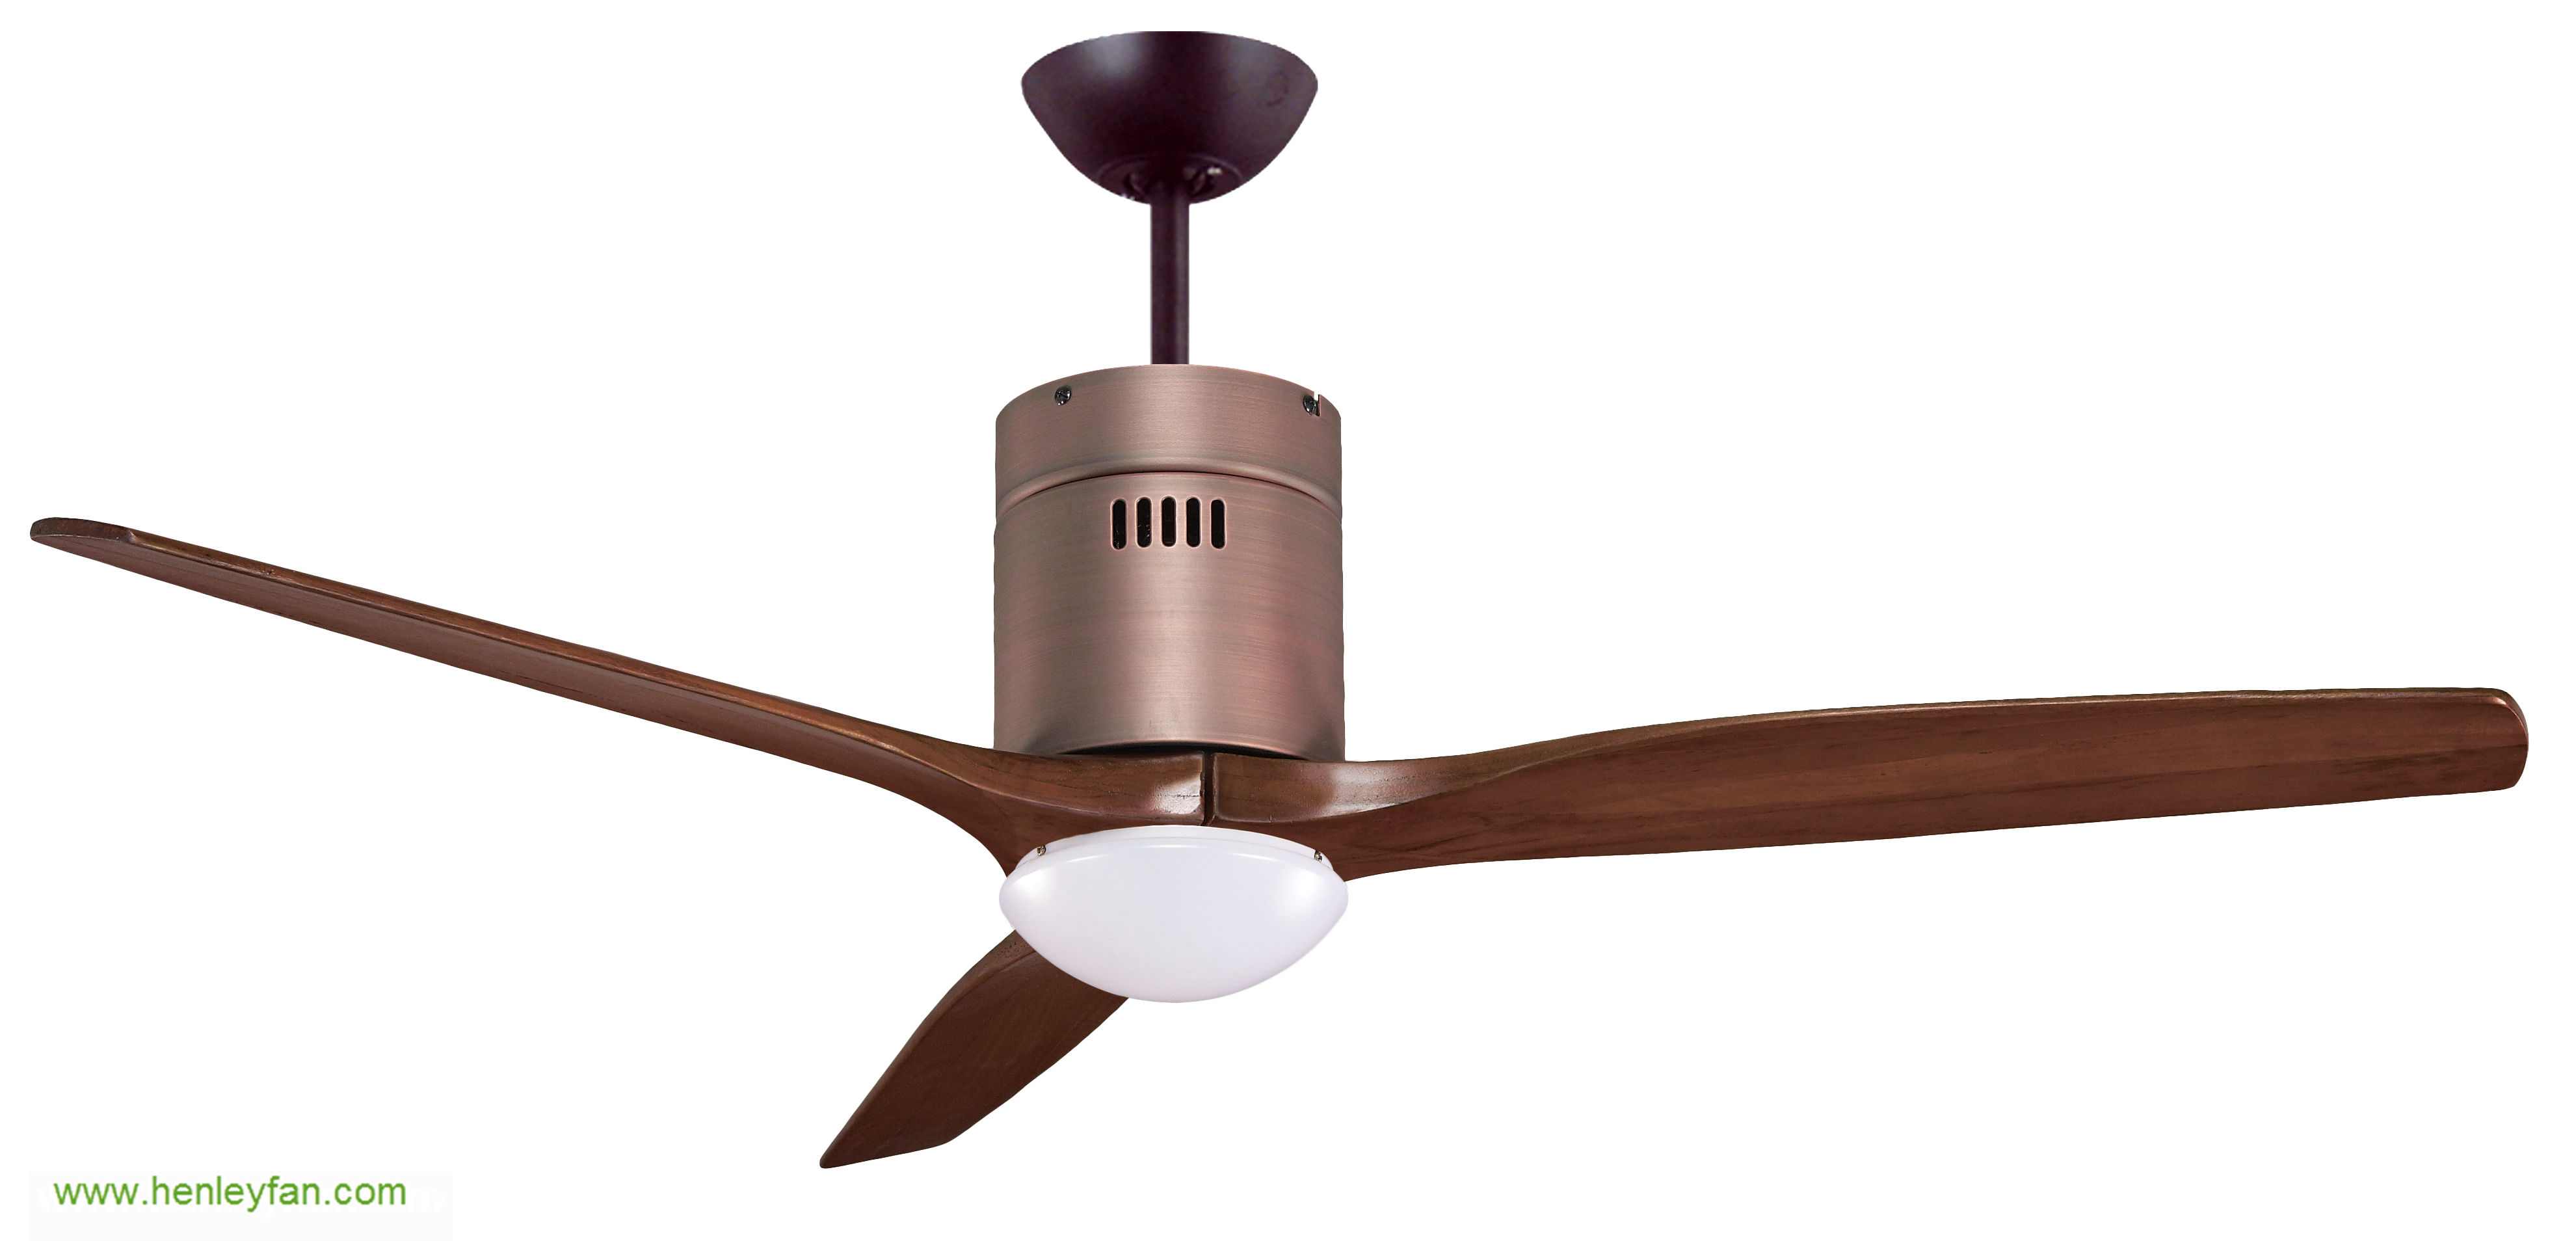 mrken pilot 3d designer low energy dc ceiling fan with led light new 2016. Black Bedroom Furniture Sets. Home Design Ideas